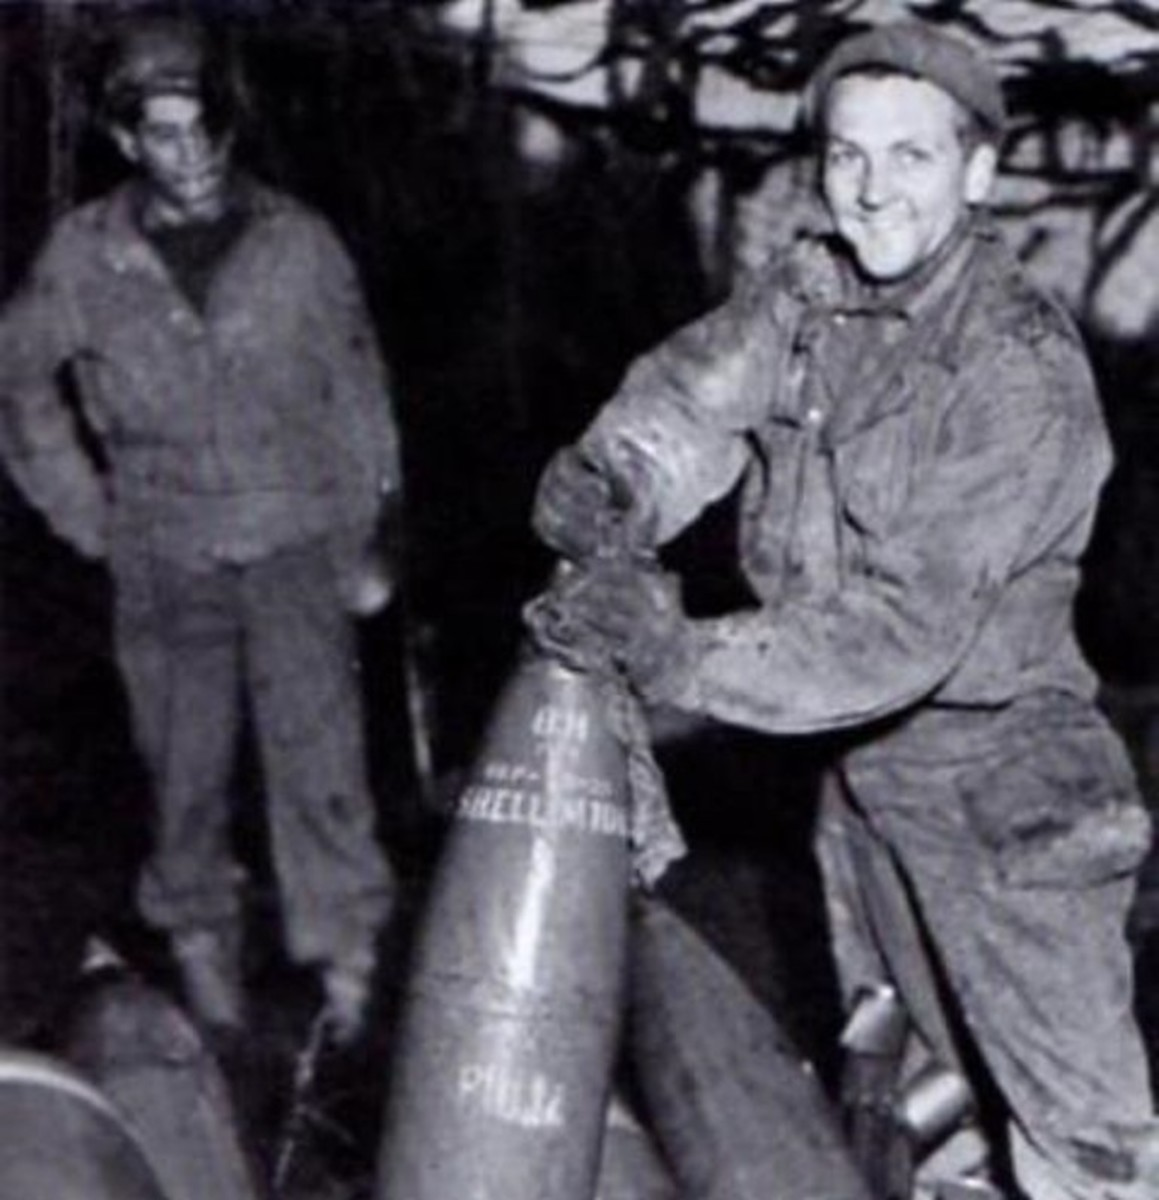 Priming an 8 inch shell